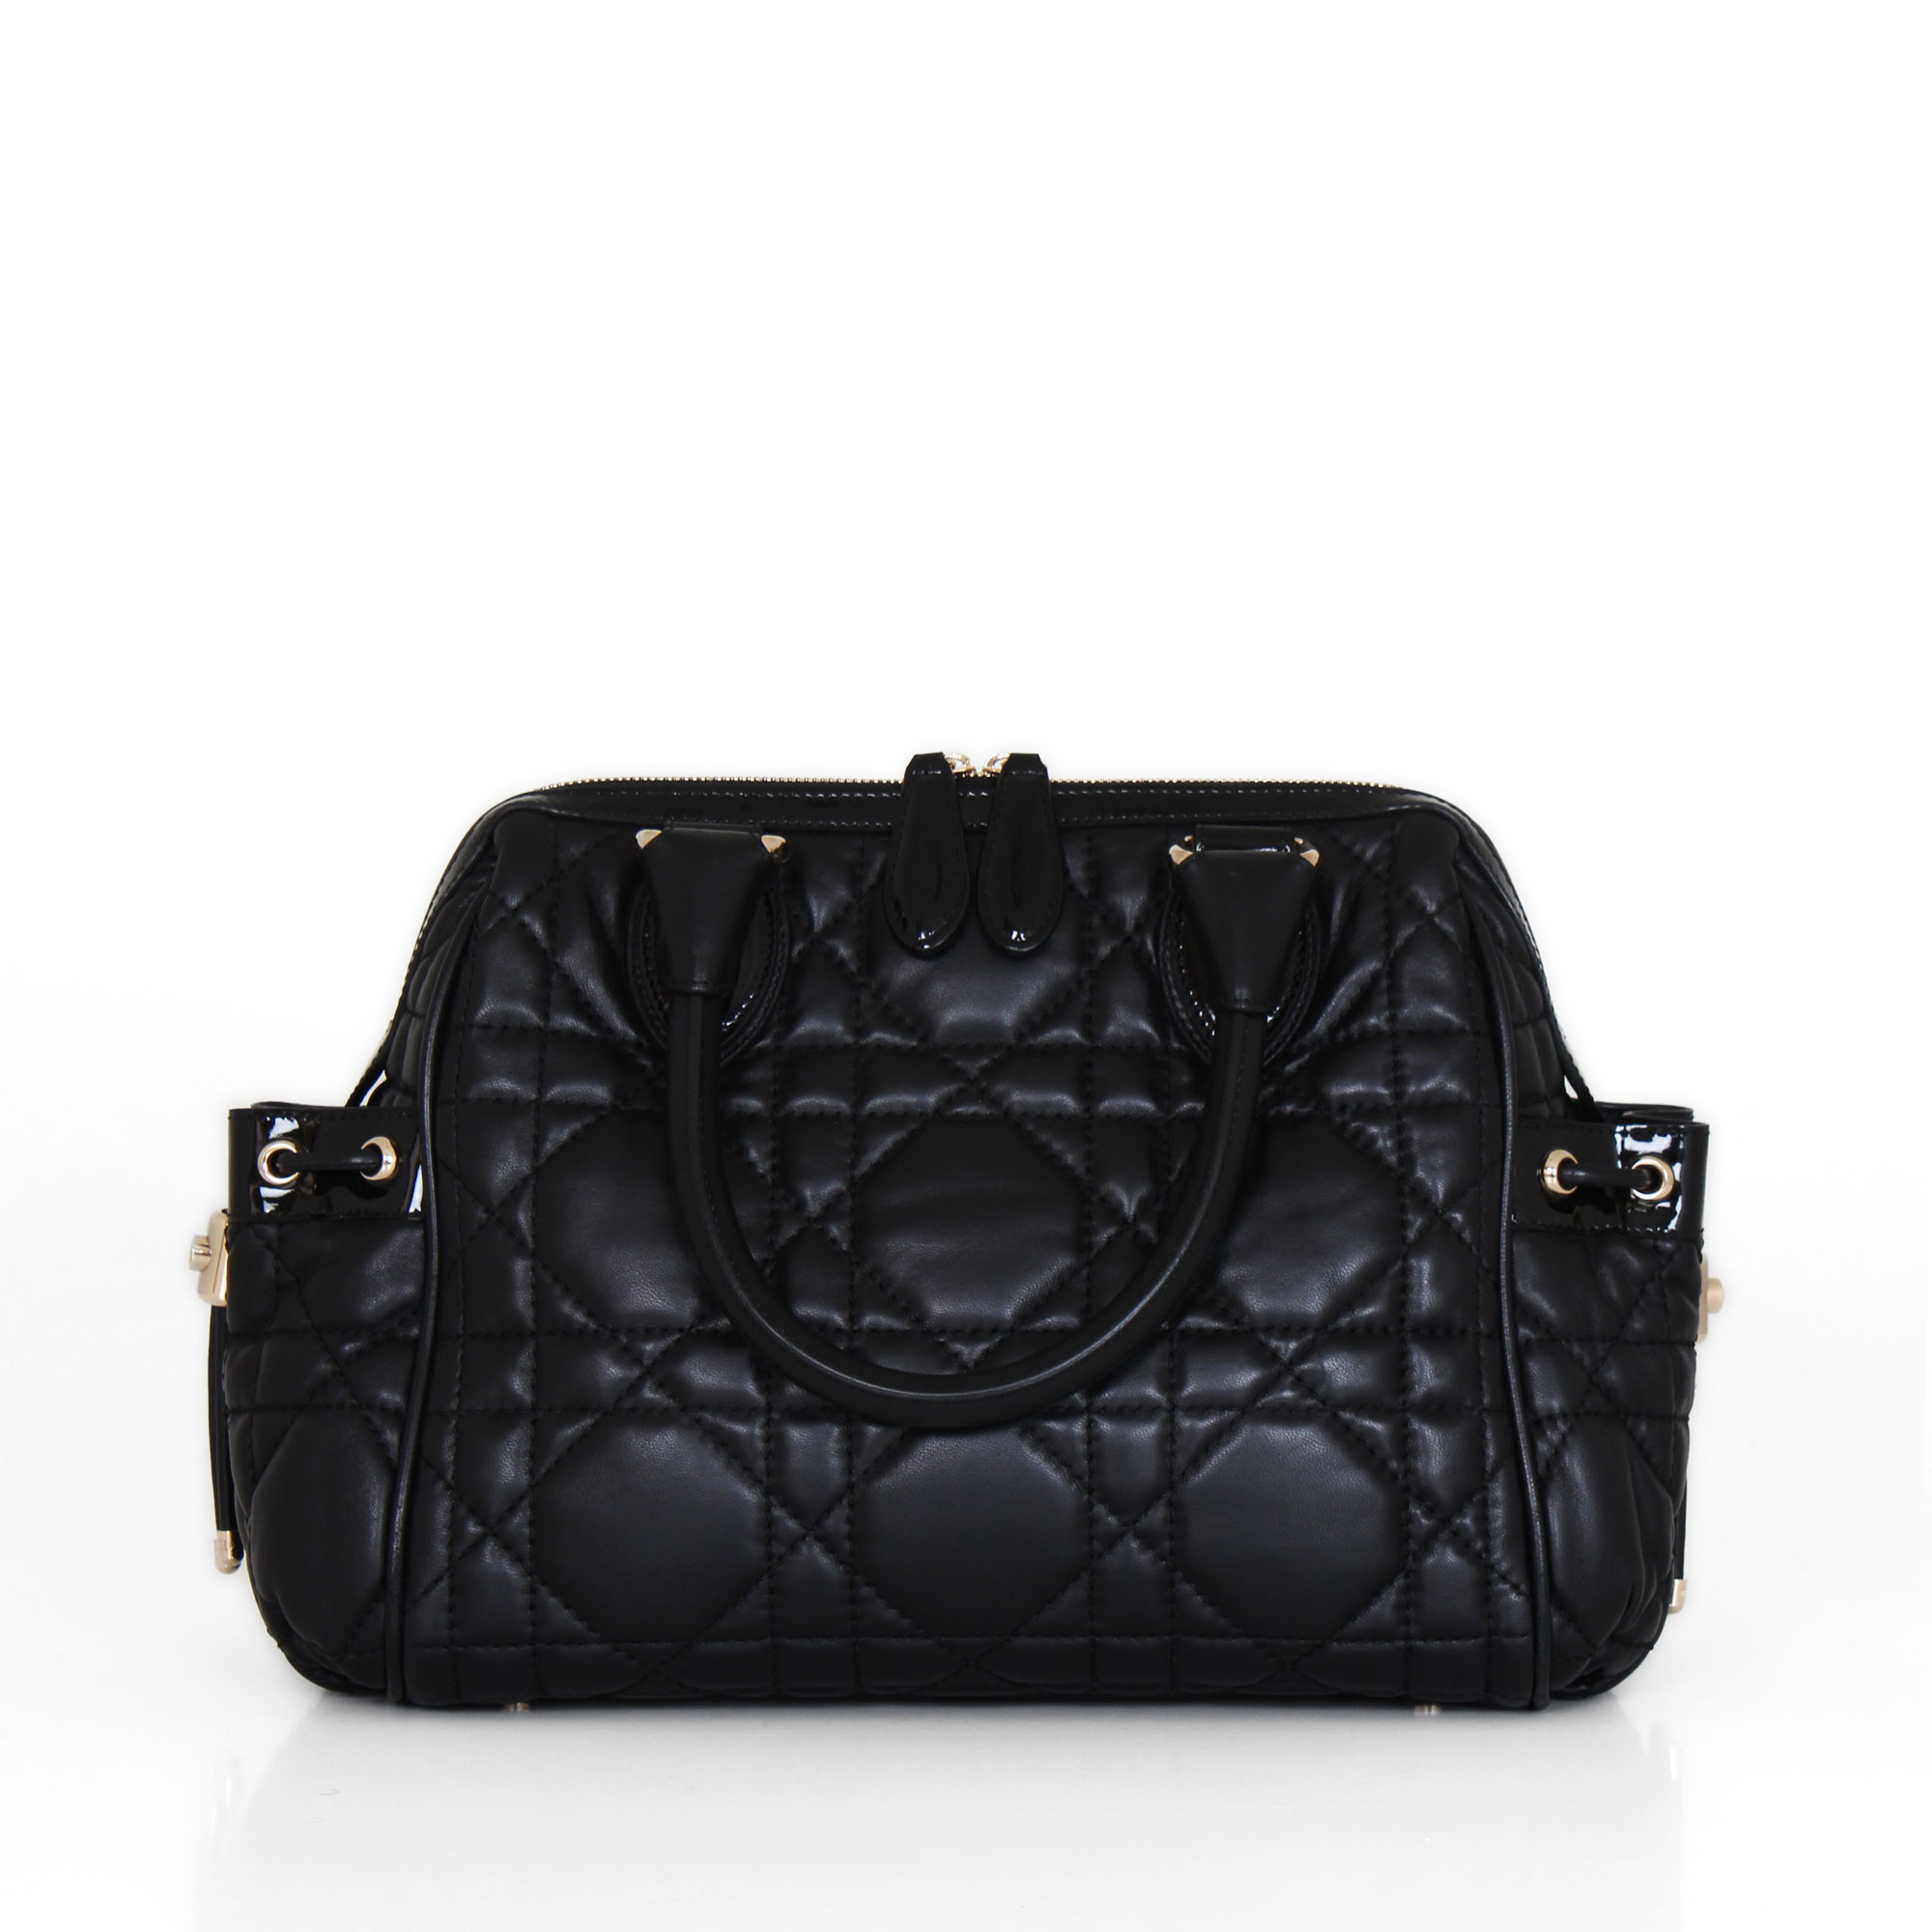 022ca9a6191a Buy and sell luxury bags dior black cannage quilted leather jpg 2000x2000 Dior  cannage bag